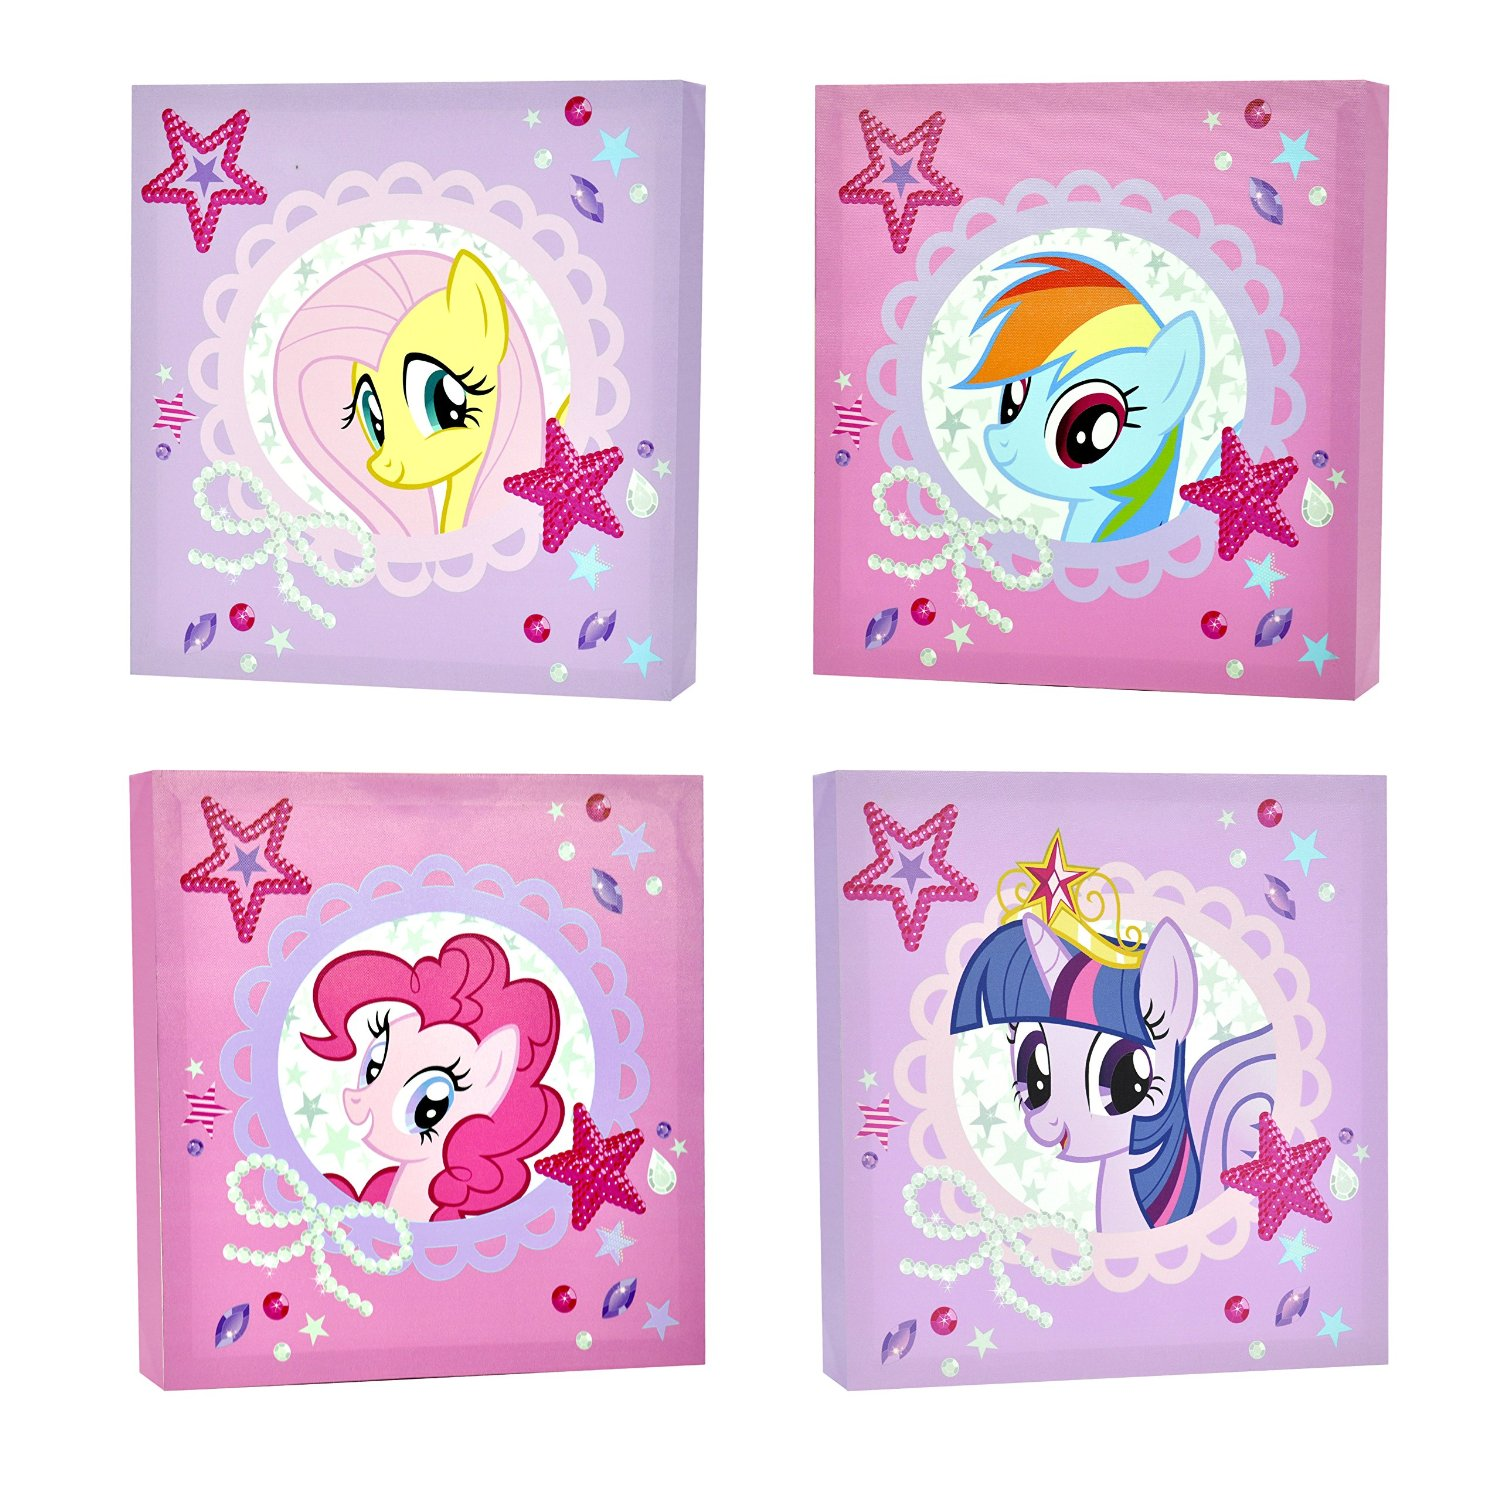 Current MLP Amazon Sales - Up to 60% Off   MLP Merch